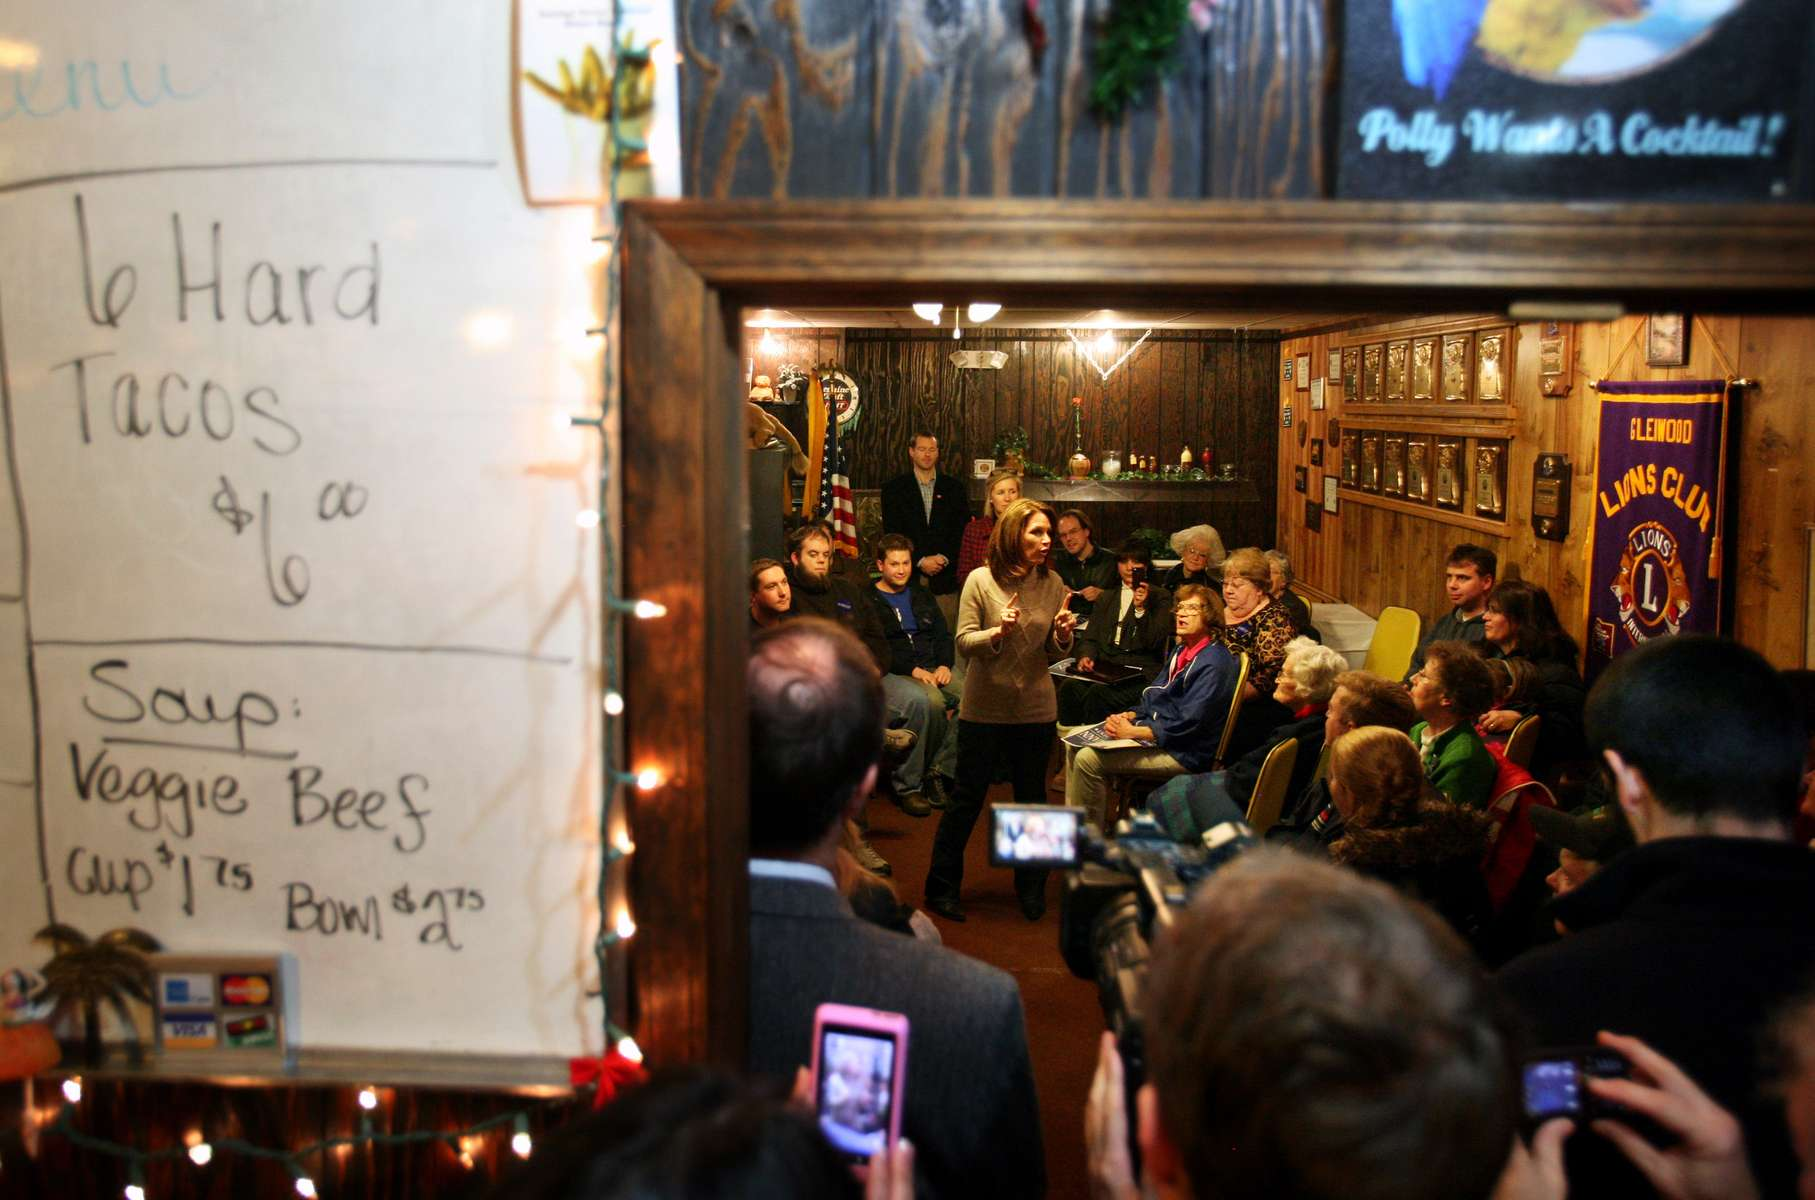 Republican presidential candidate Michele Bachmann speaks to a full house at Oasis Steak House & Lounge in Glenwood, Iowa.